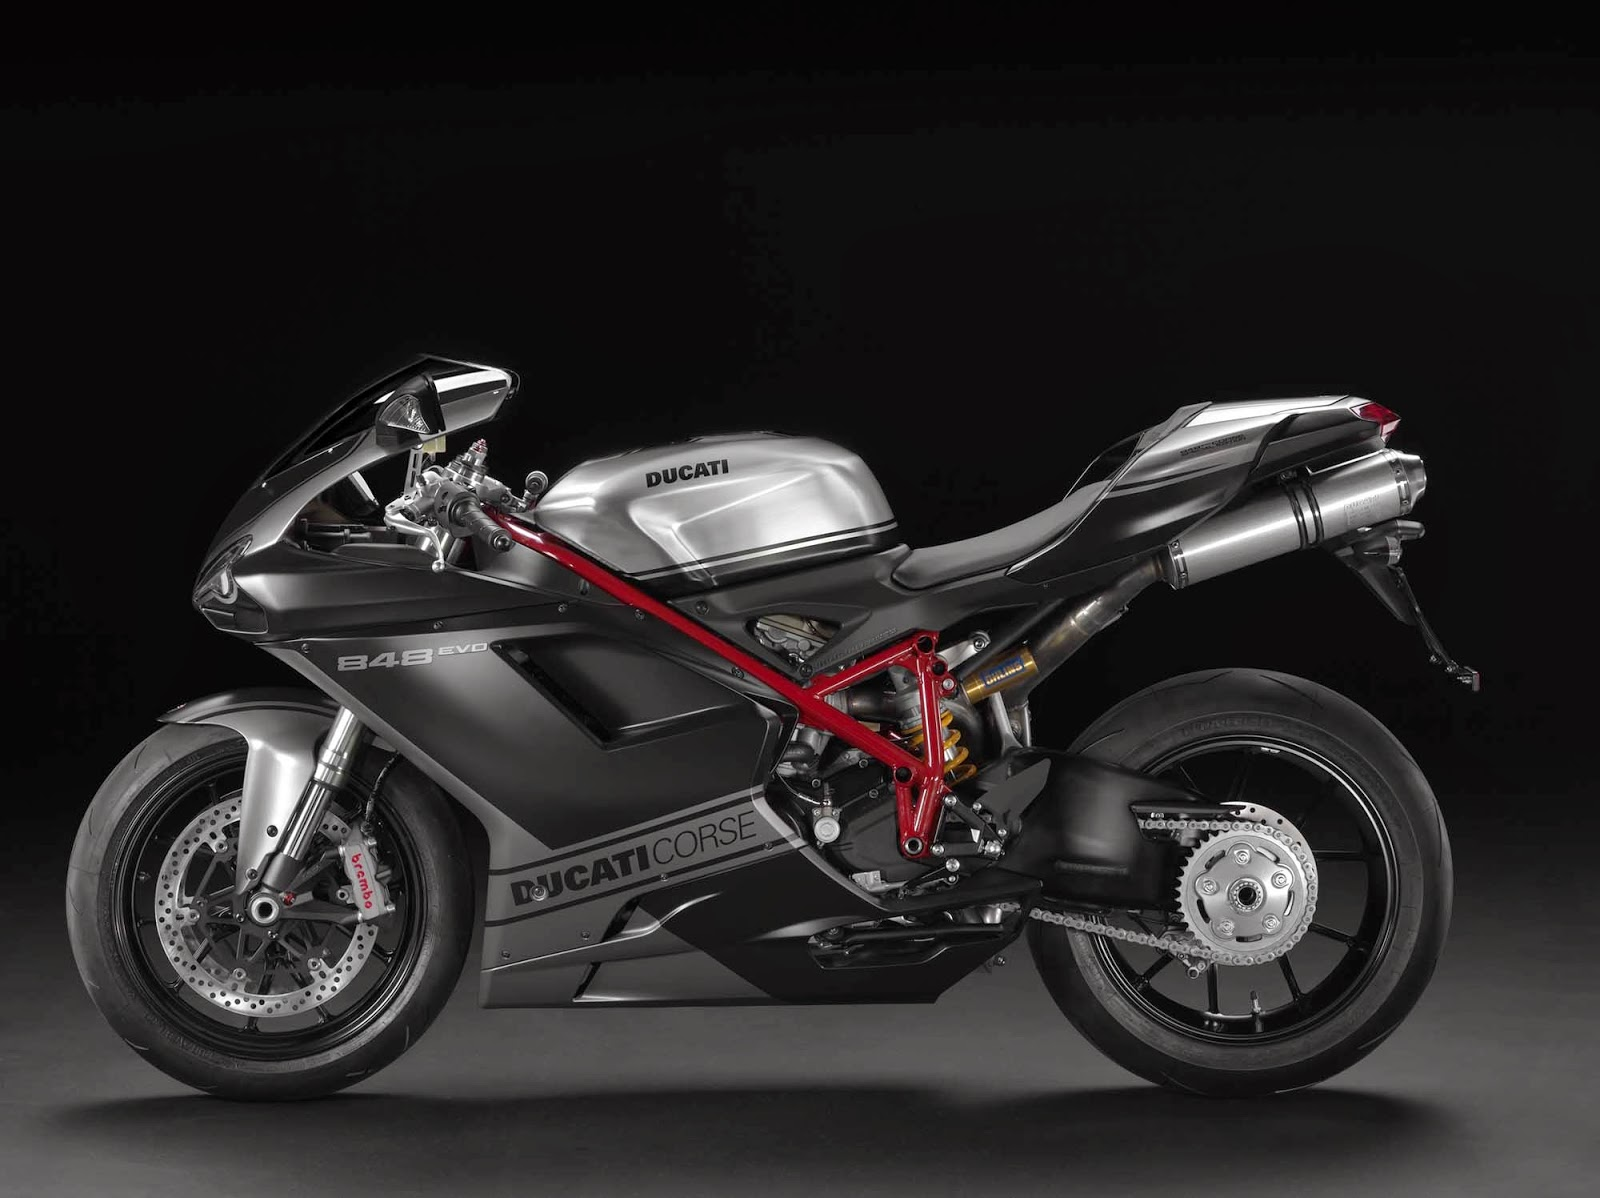 Background Get Ducati 1199 Panigale R Wallpaper Photos for your 1600x1198